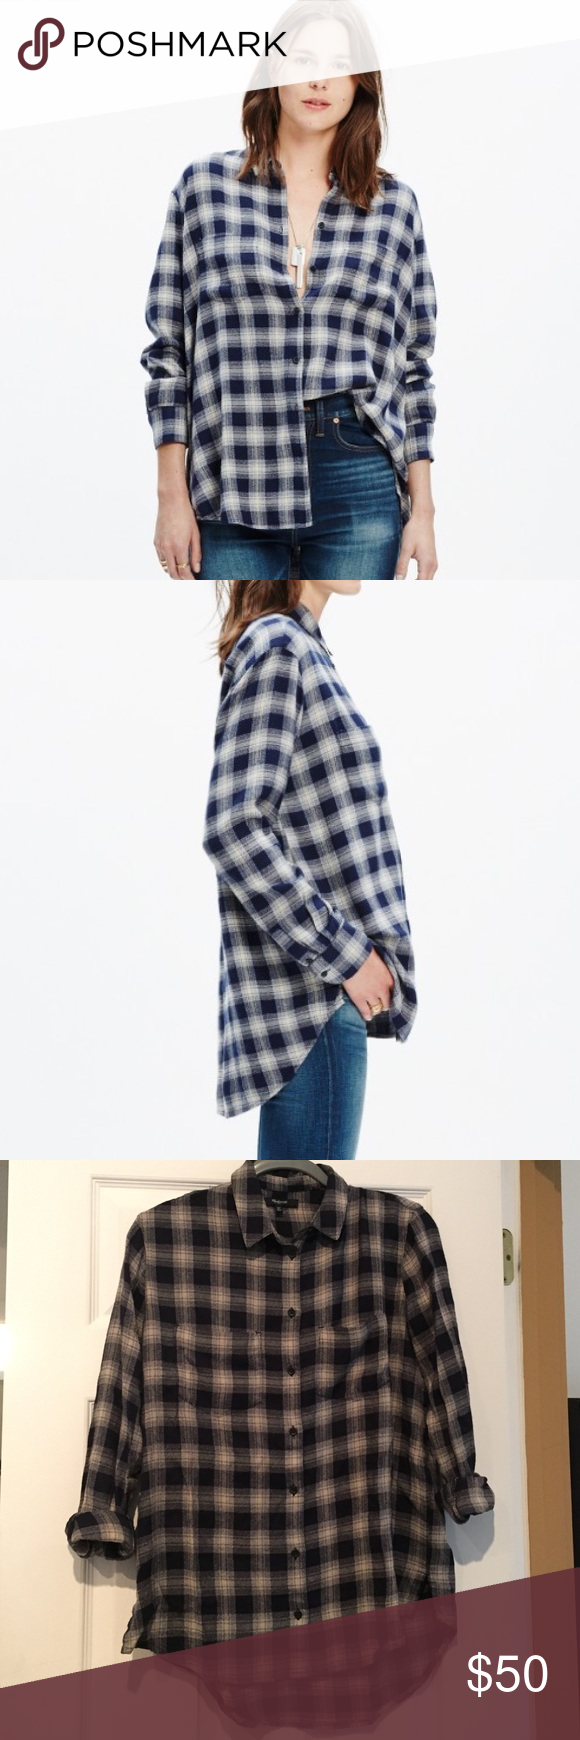 ✨REDUCED Madewell Oversized Boyshirt Andover Plaid So popular and sold out in stores! Worn twice, freshly dry cleaned. An oversized version of our favorite tomboy button-down with a cool slit shirttail hem. An easy shape in a timeless lightweight plaid.    Oversized fit. Cotton. Machine wash. Import. Madewell Tops Button Down Shirts